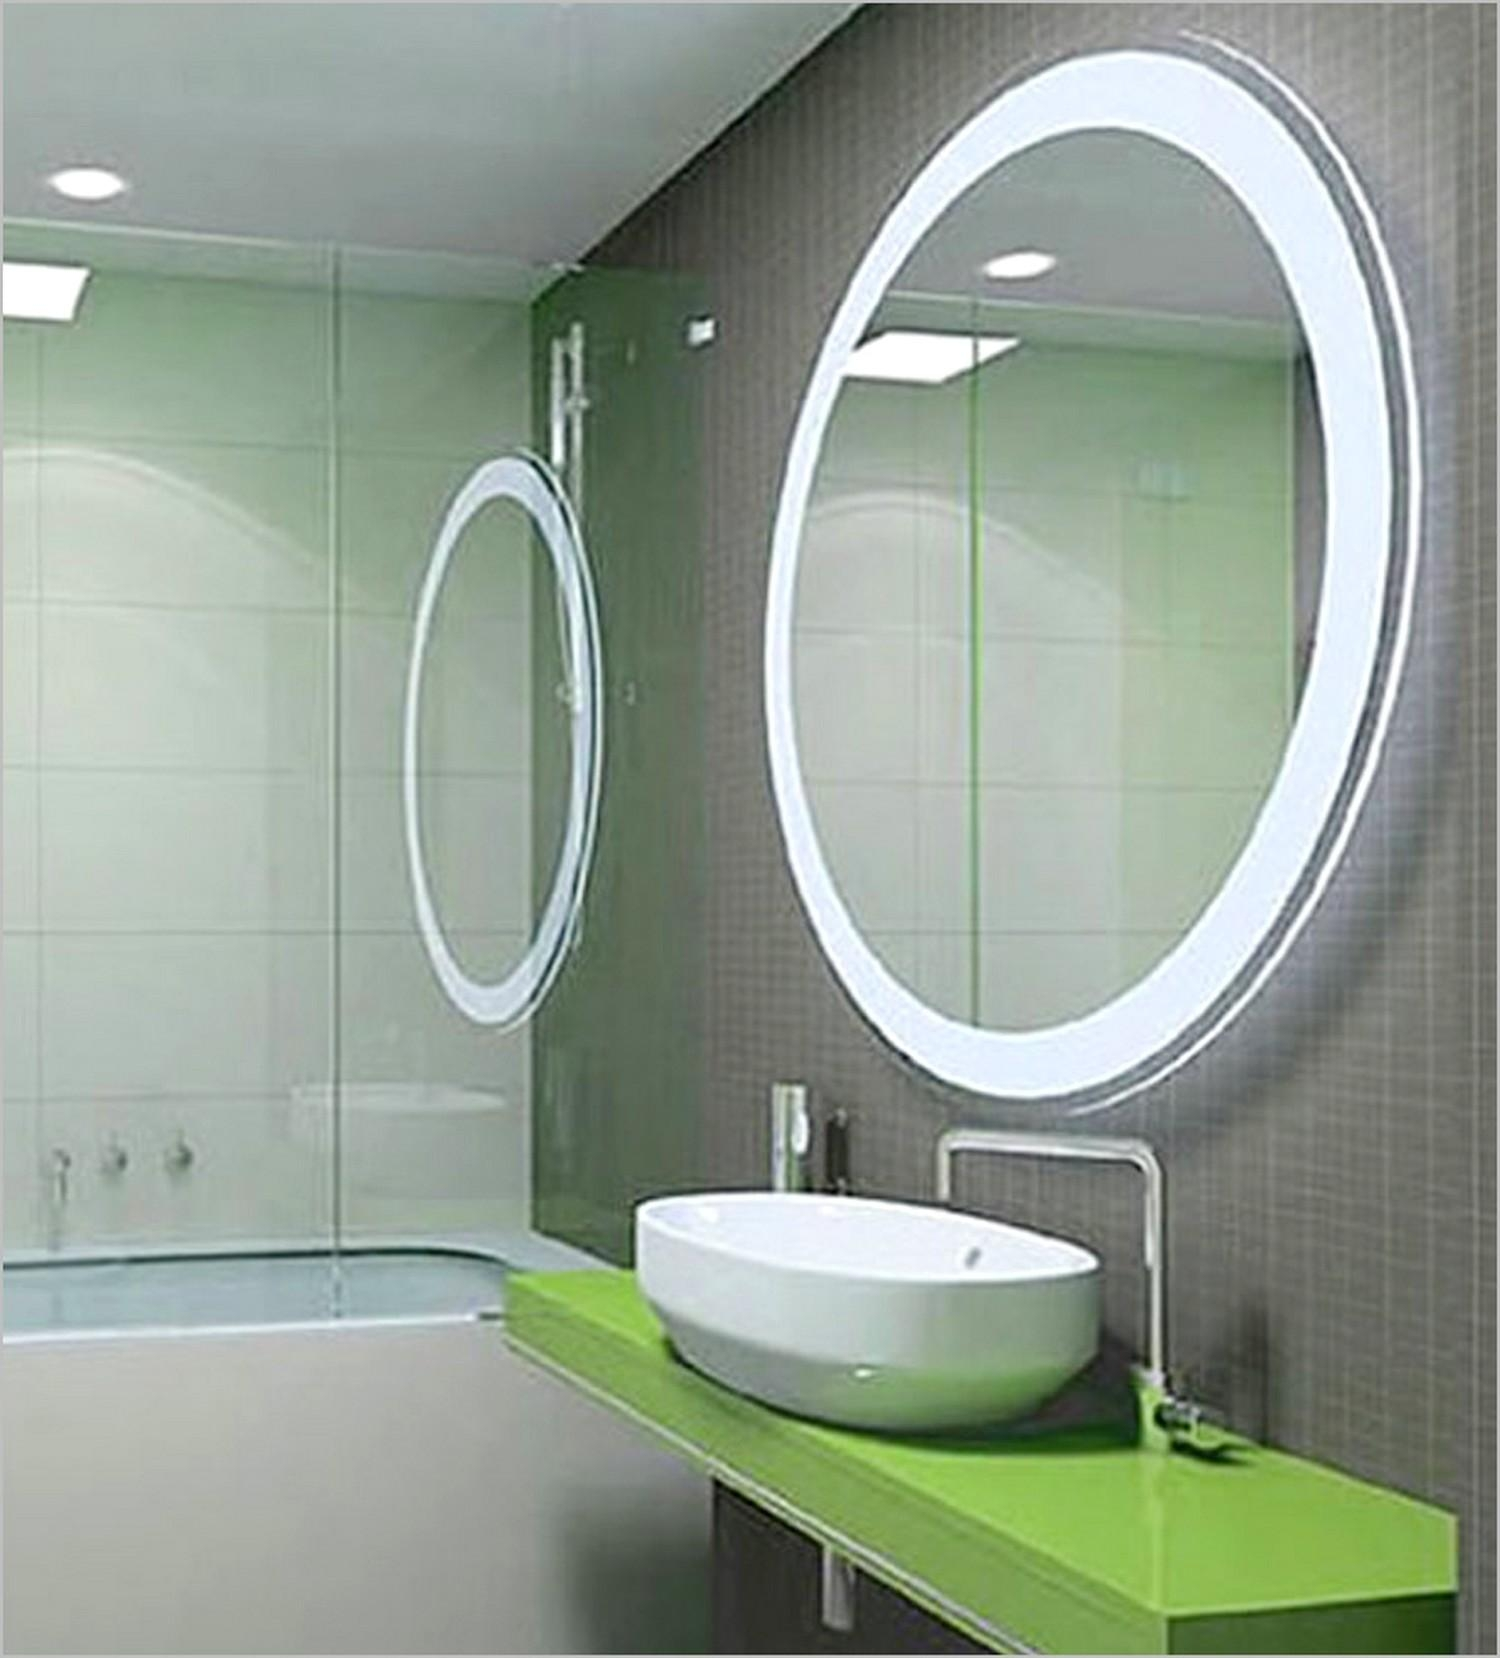 Bathroom: Oval Wall Mirror With Led Light For Bathroom Wall Mirror For Bathroom Wall Mirrors With Lights (Image 4 of 20)